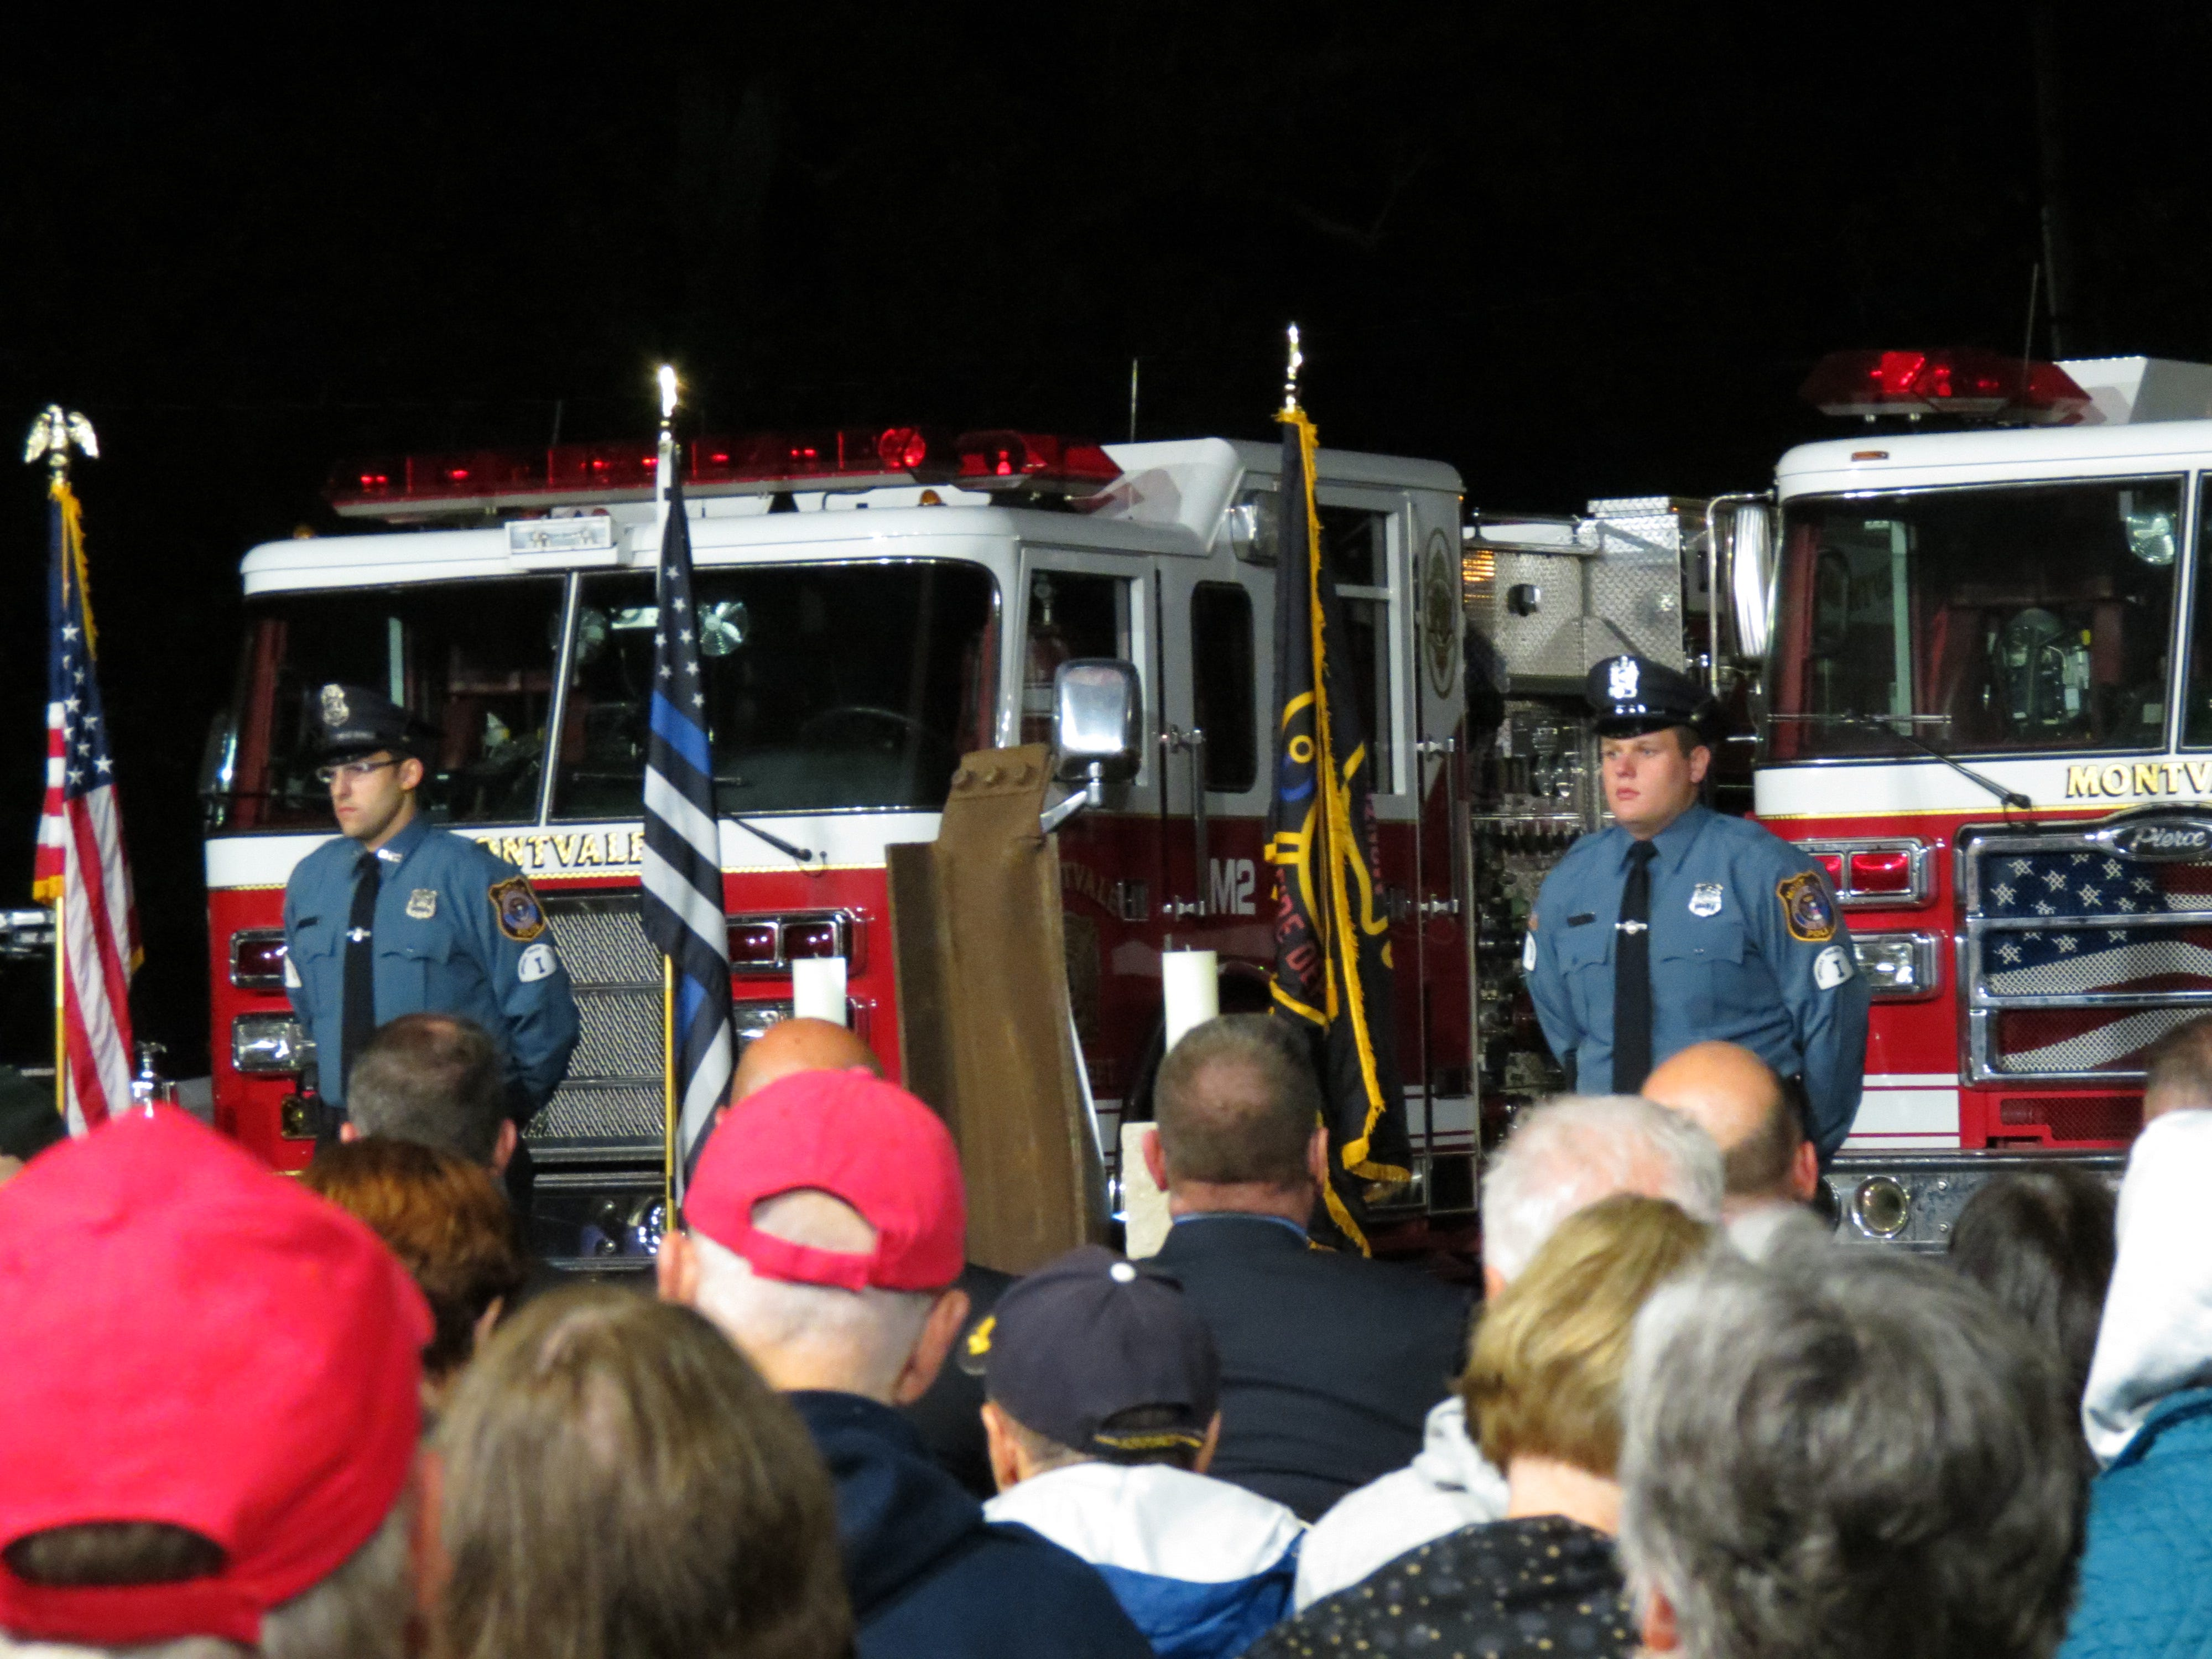 Montvale Police Officers look on as speakers talk during the 9/11 ceremony at the Montvale Fire House on Tuesday, Sept. 18, 2018.